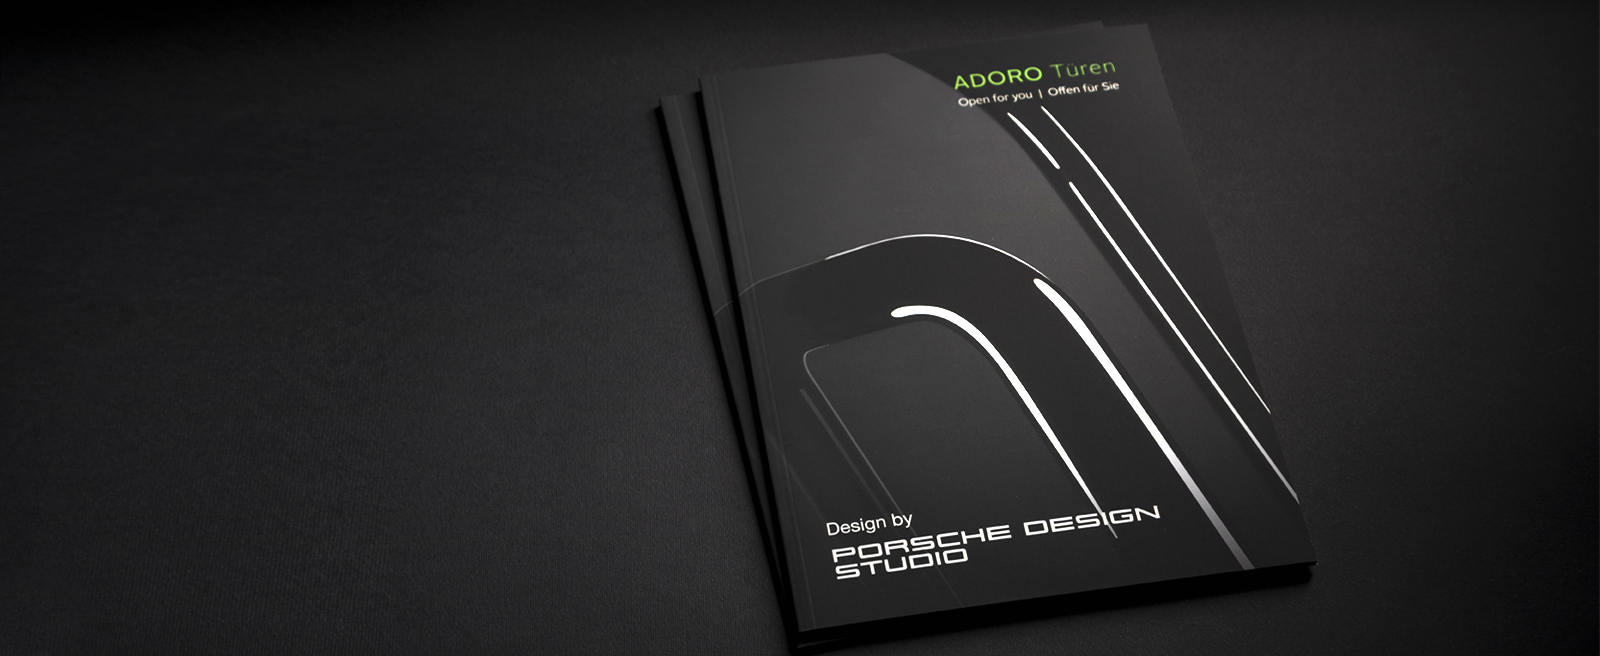 Adoro by Porsche design studio